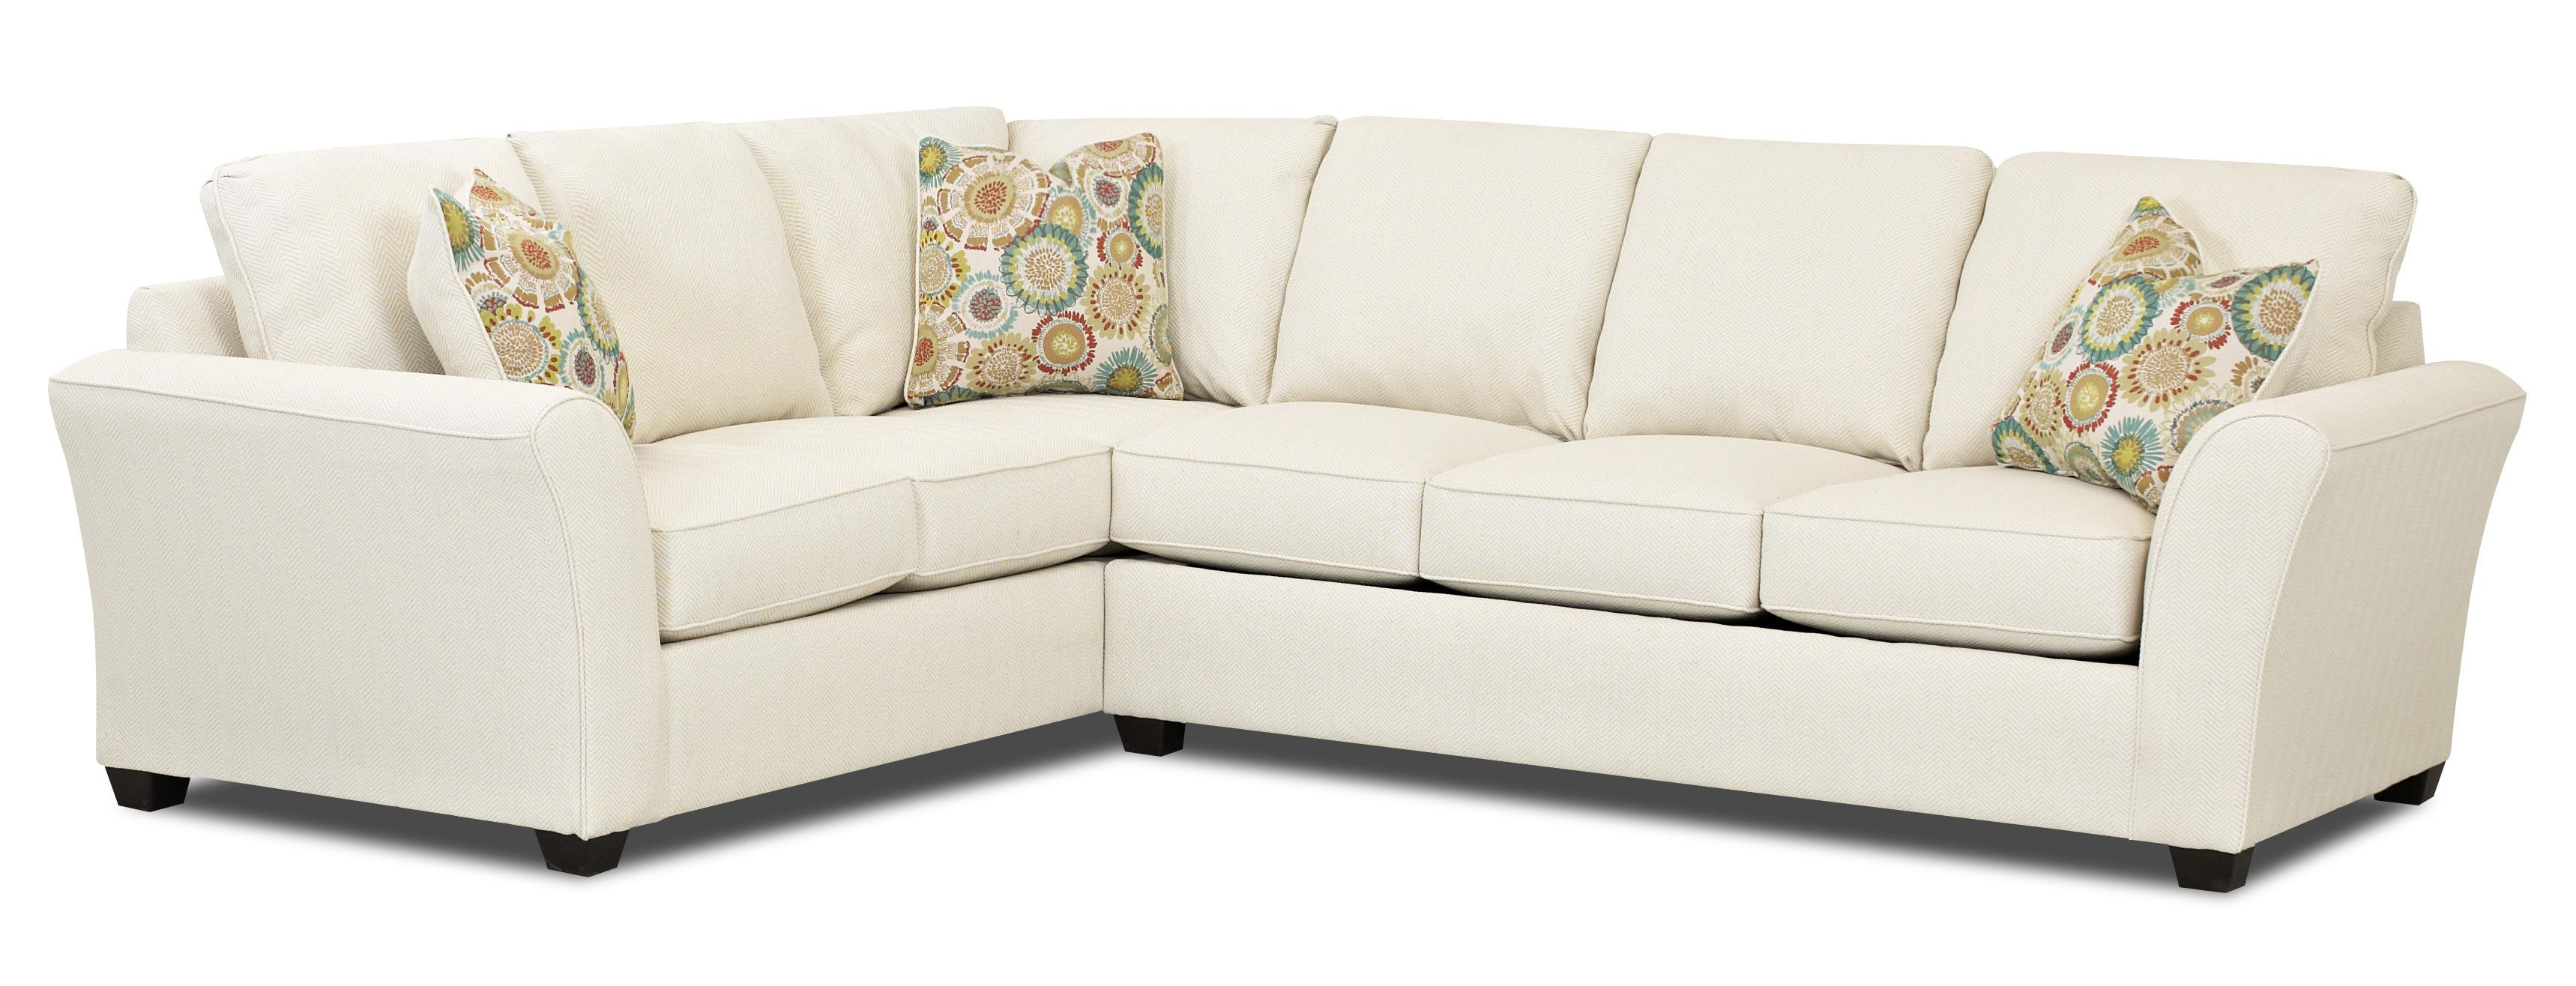 Transitional 2 Piece Sectional Sleeper Sofa